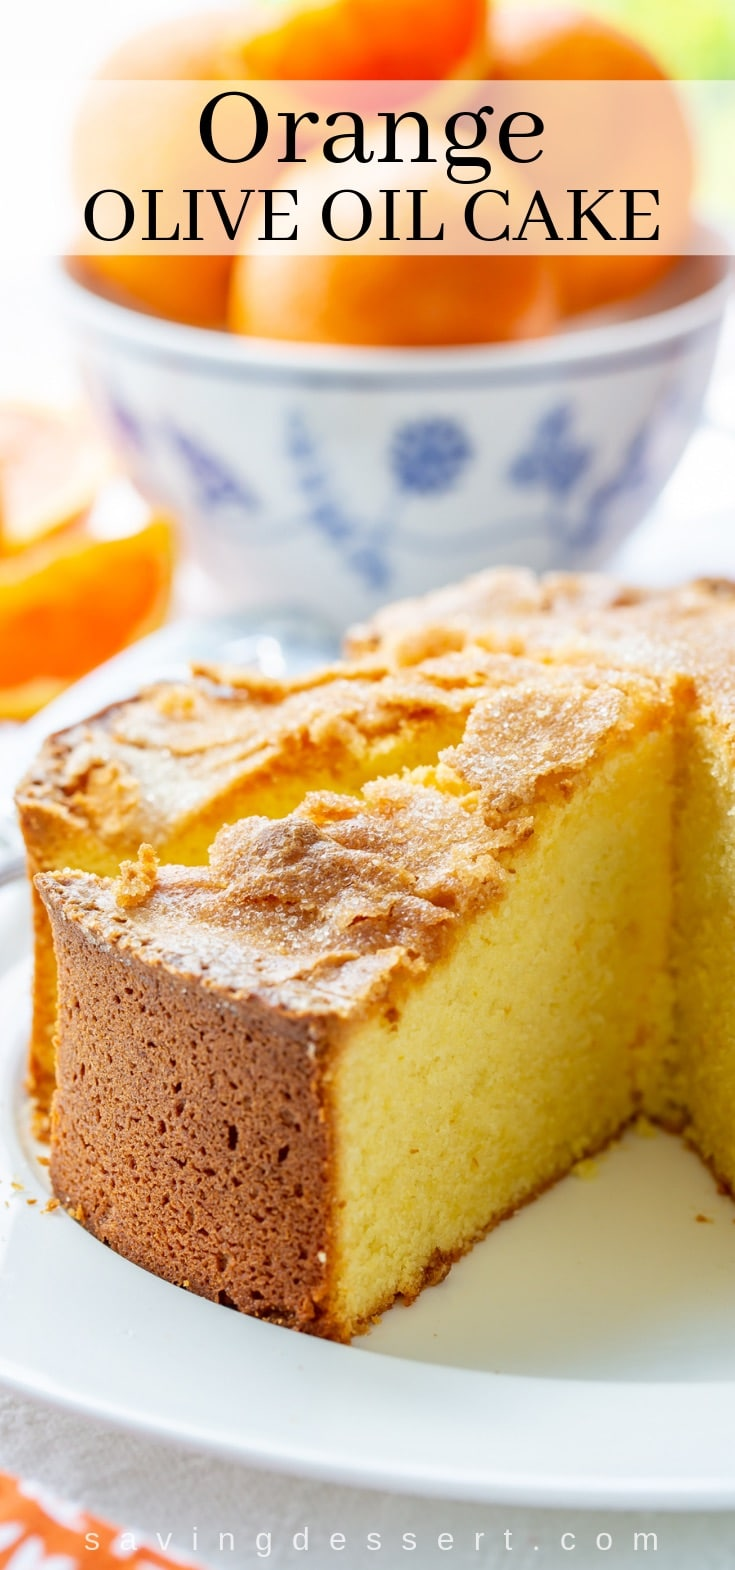 A slice of orange olive oil cake with a crispy crackly top